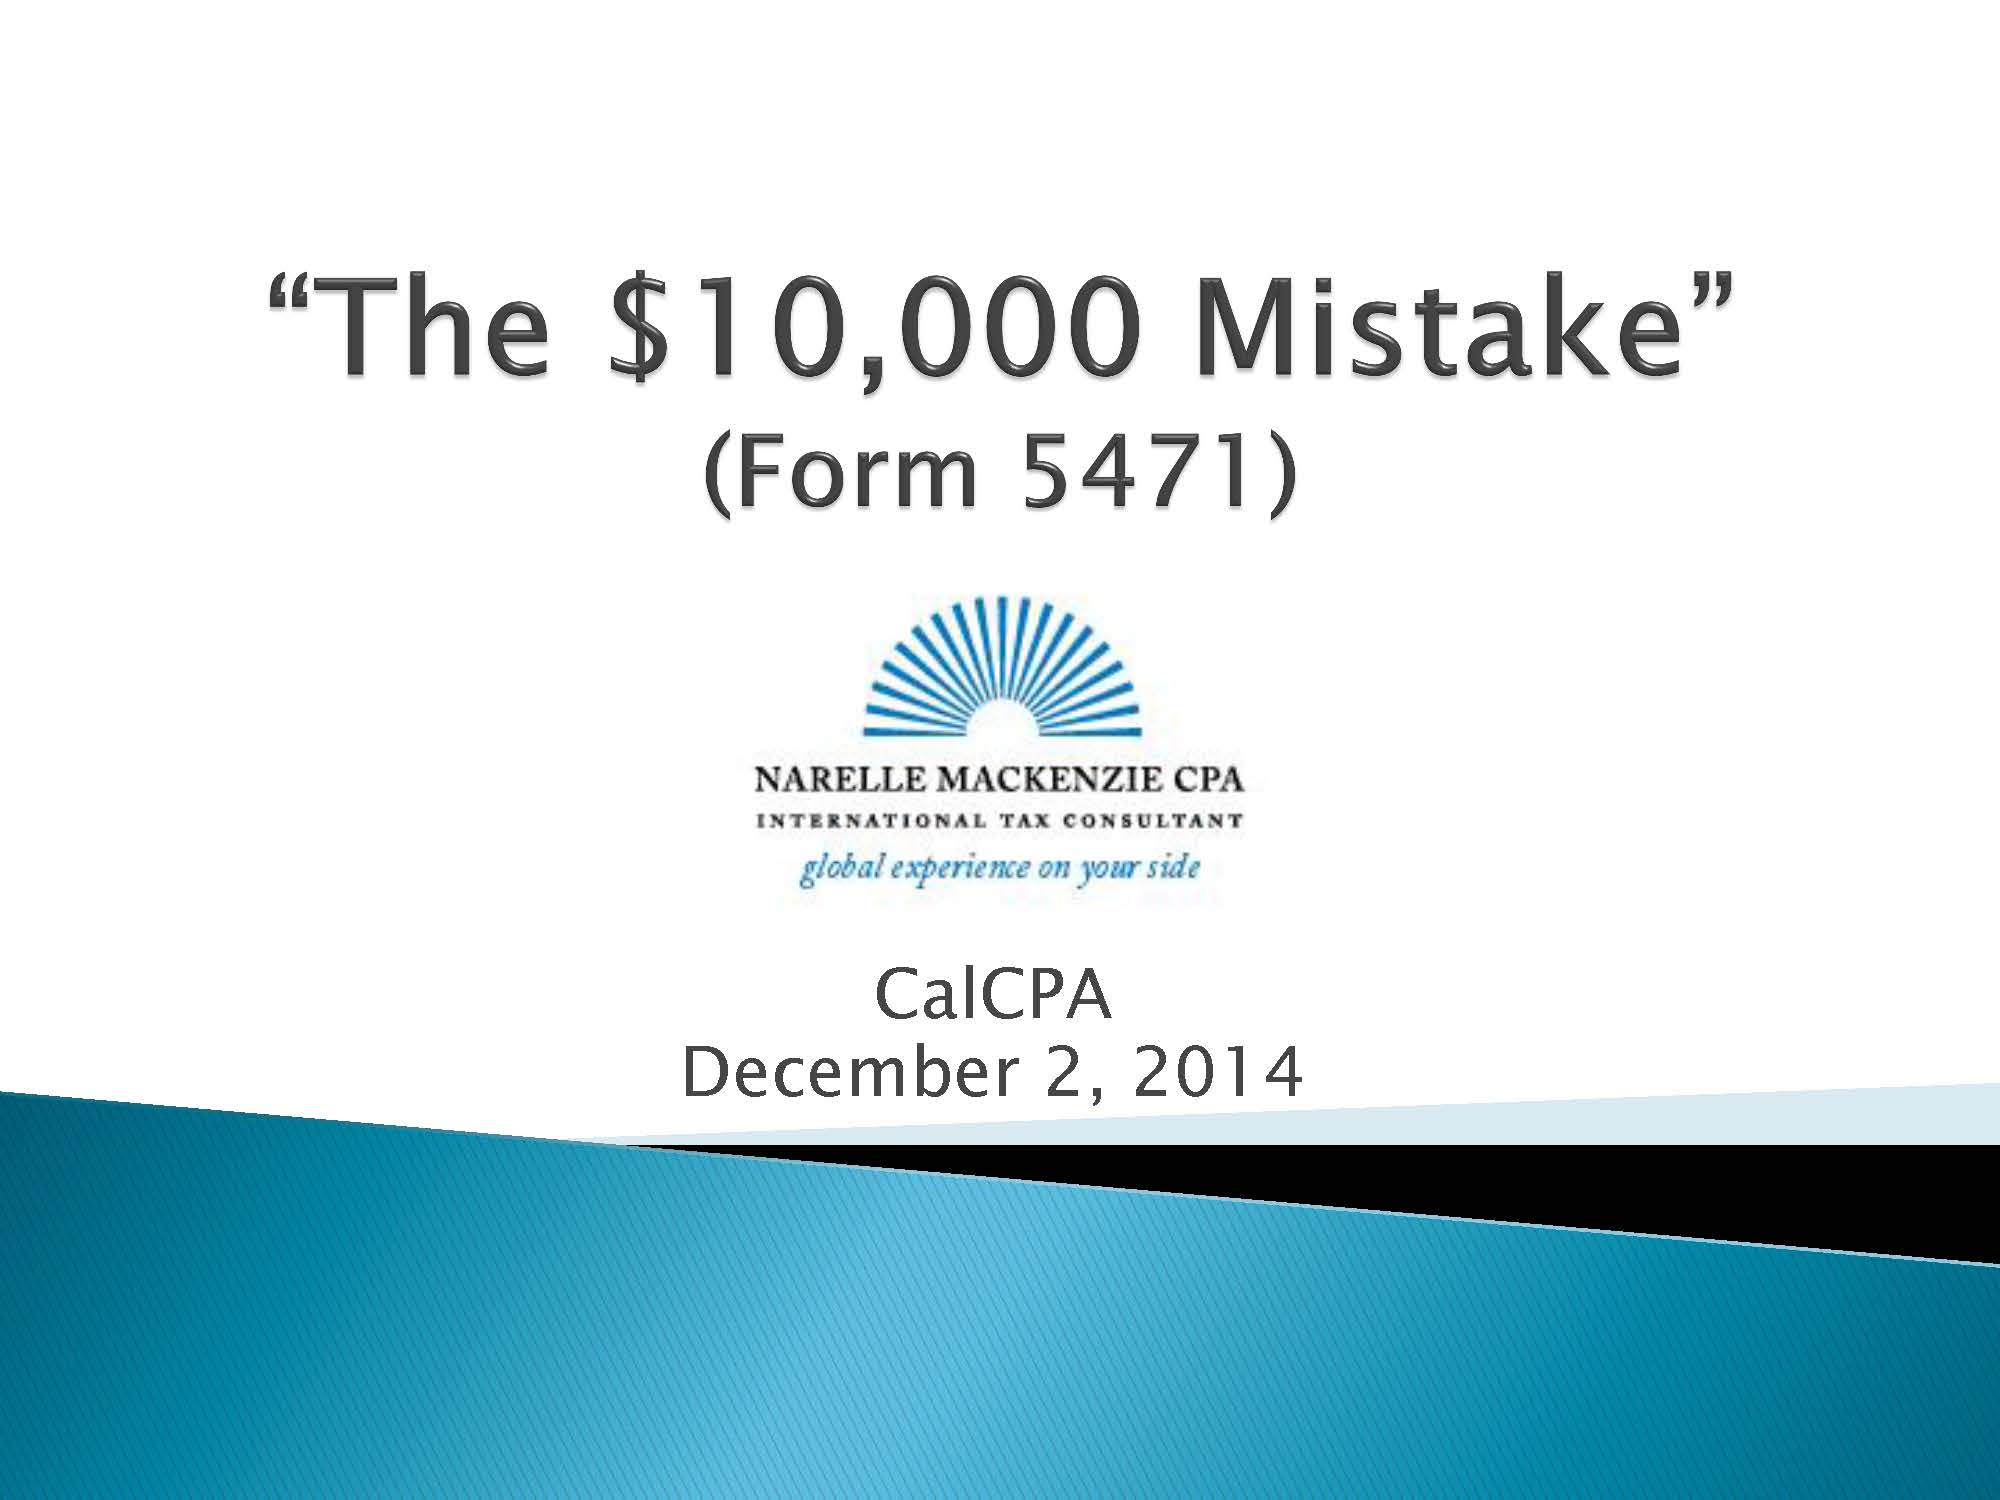 Form 5471 – The $10,000 Mistake